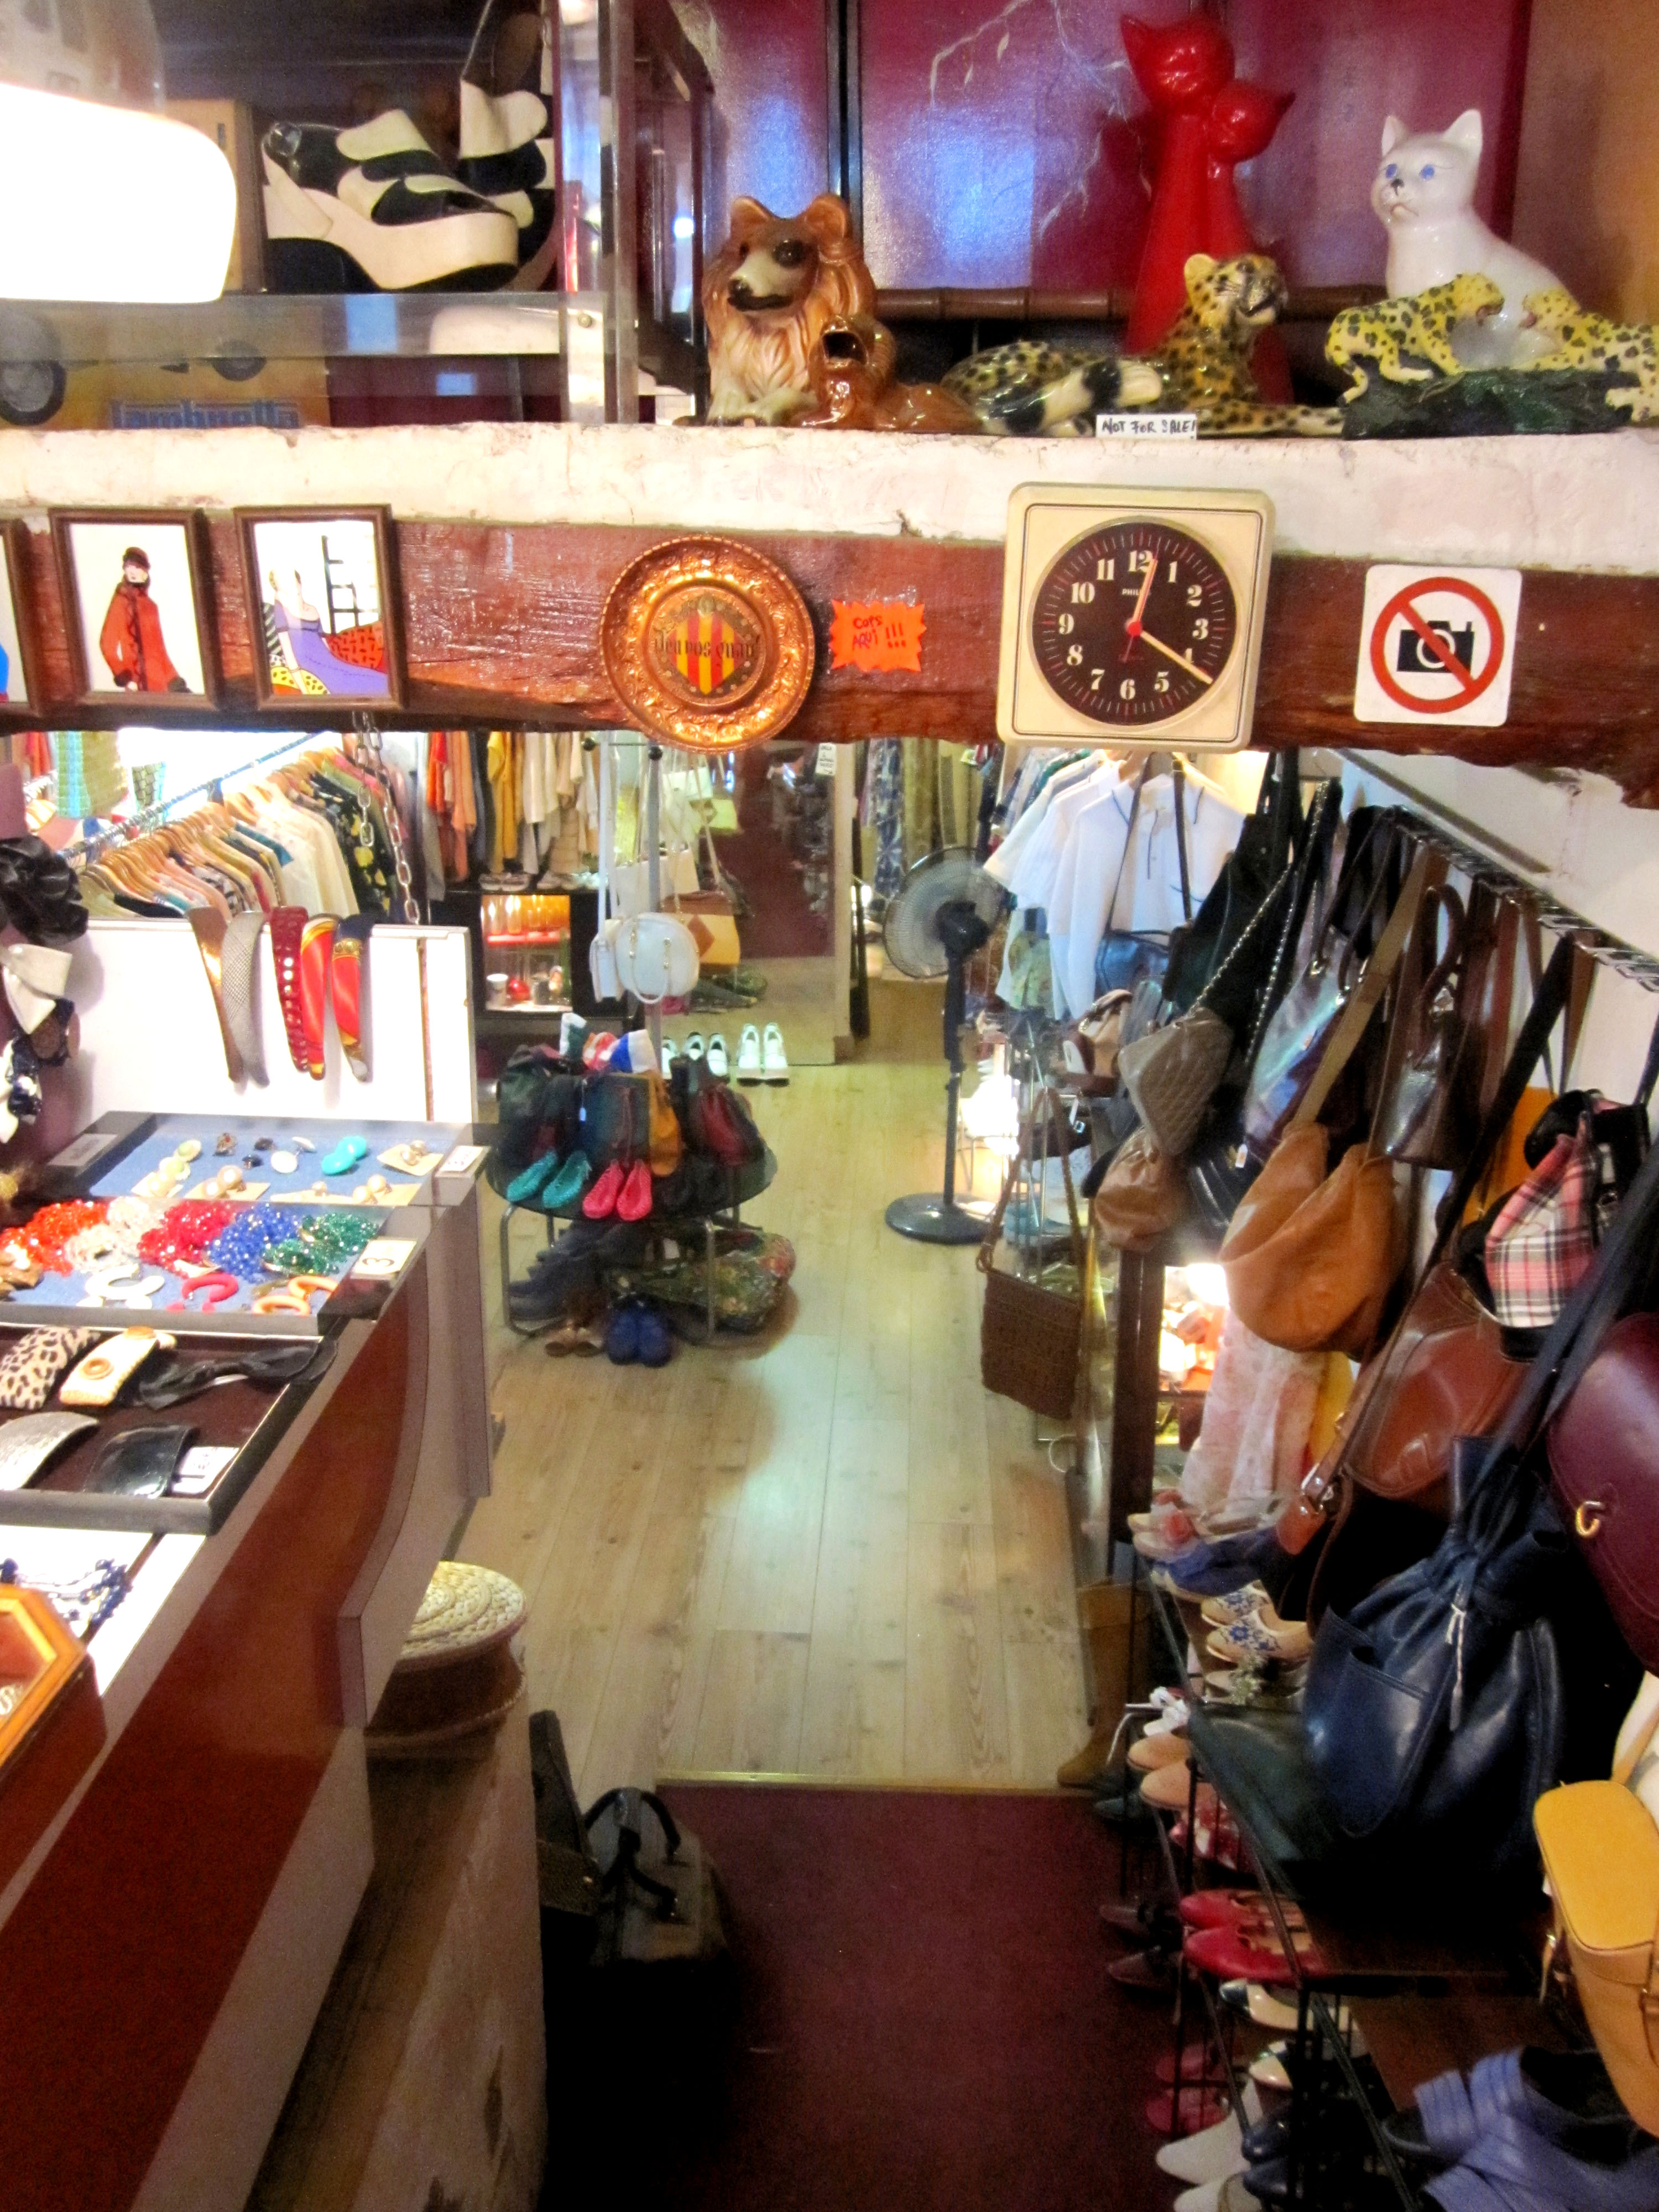 Inside the shops you can spend hours rummaging in the retro clothes